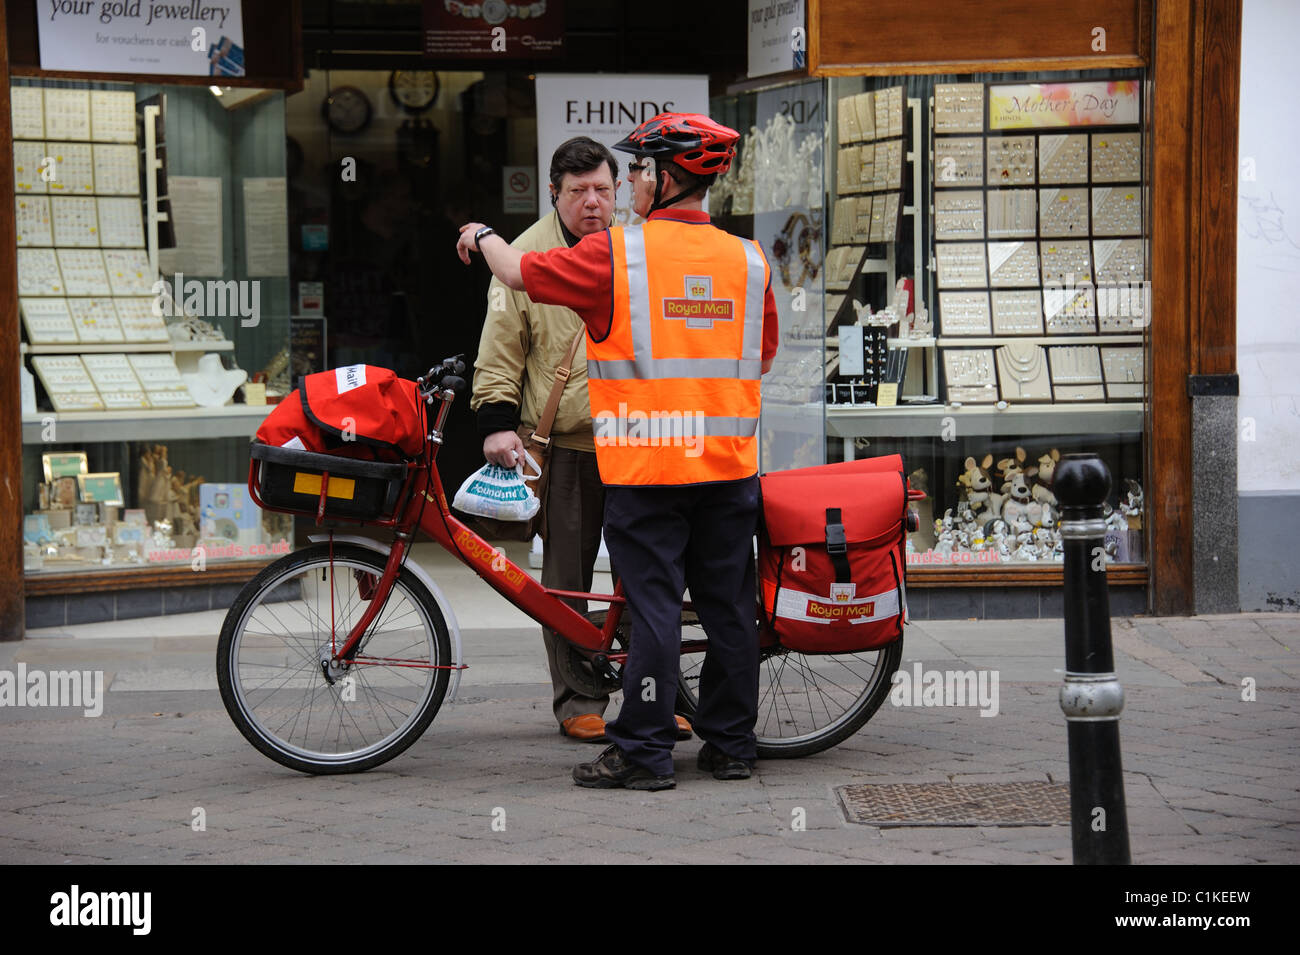 Postman with a bicycle giving directions to a passerby on his town centre round - Stock Image